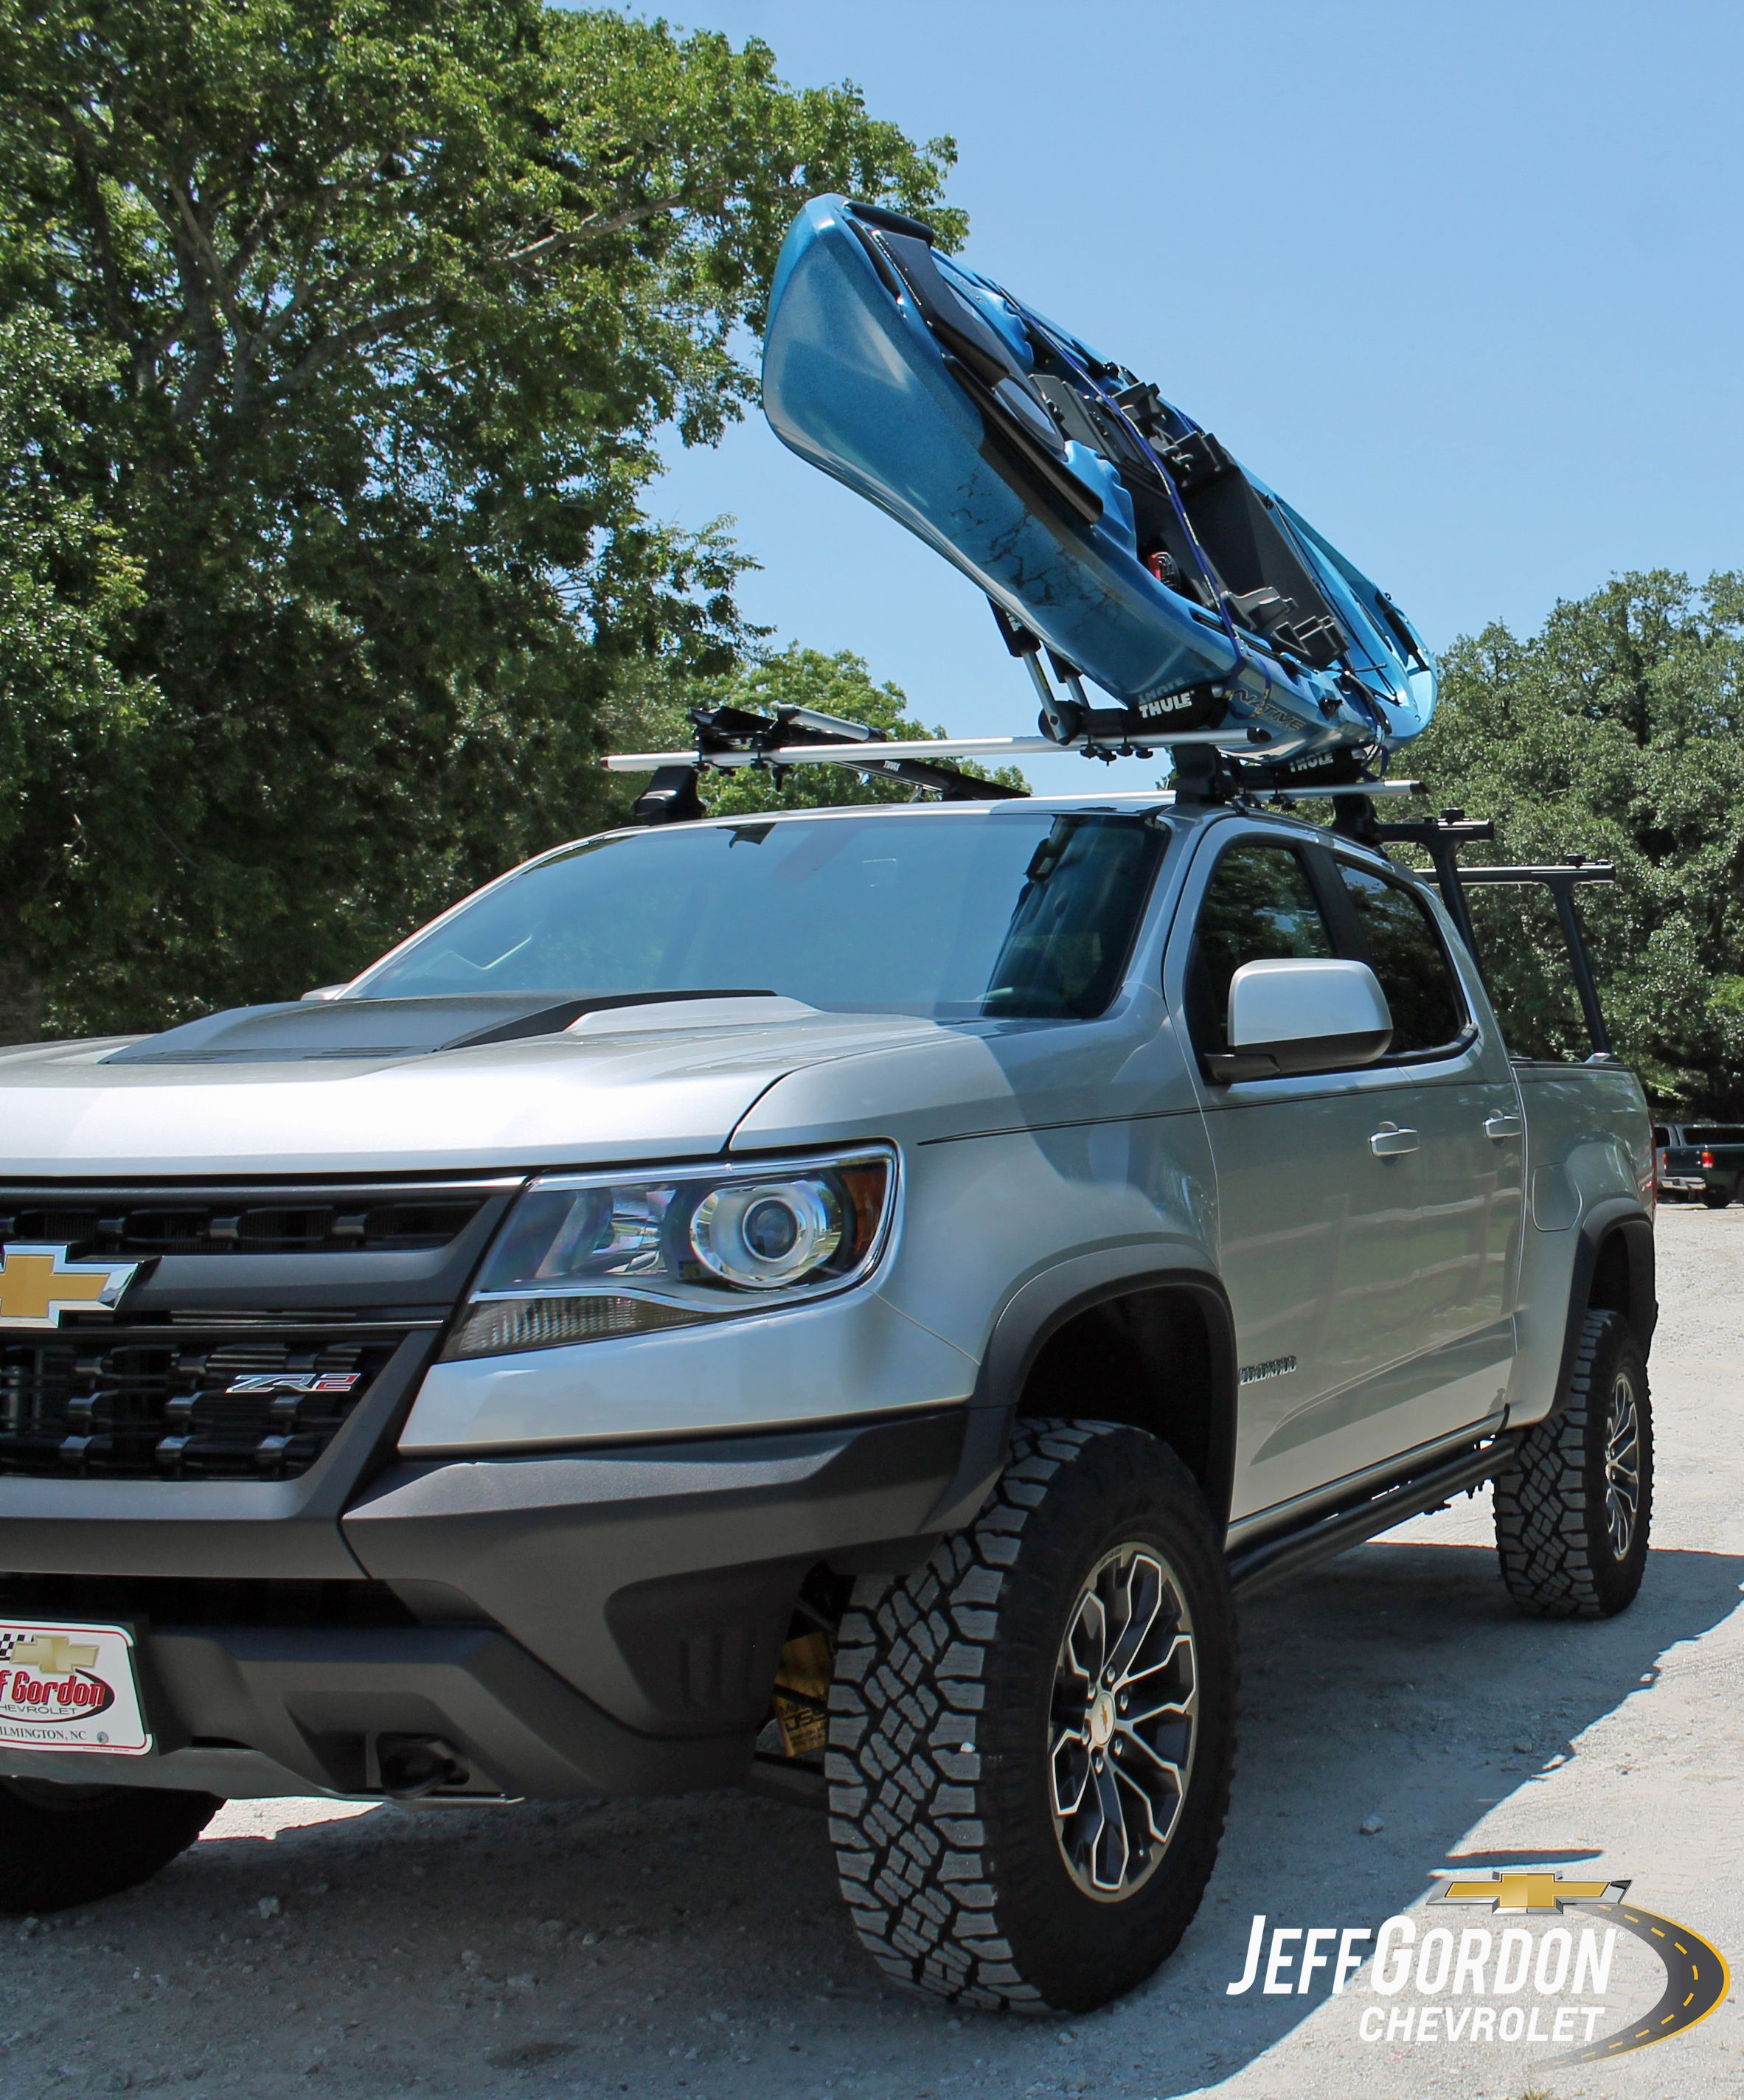 The Ruggedly Handsome Chevrolet Colorado Zr2 Equipped With The